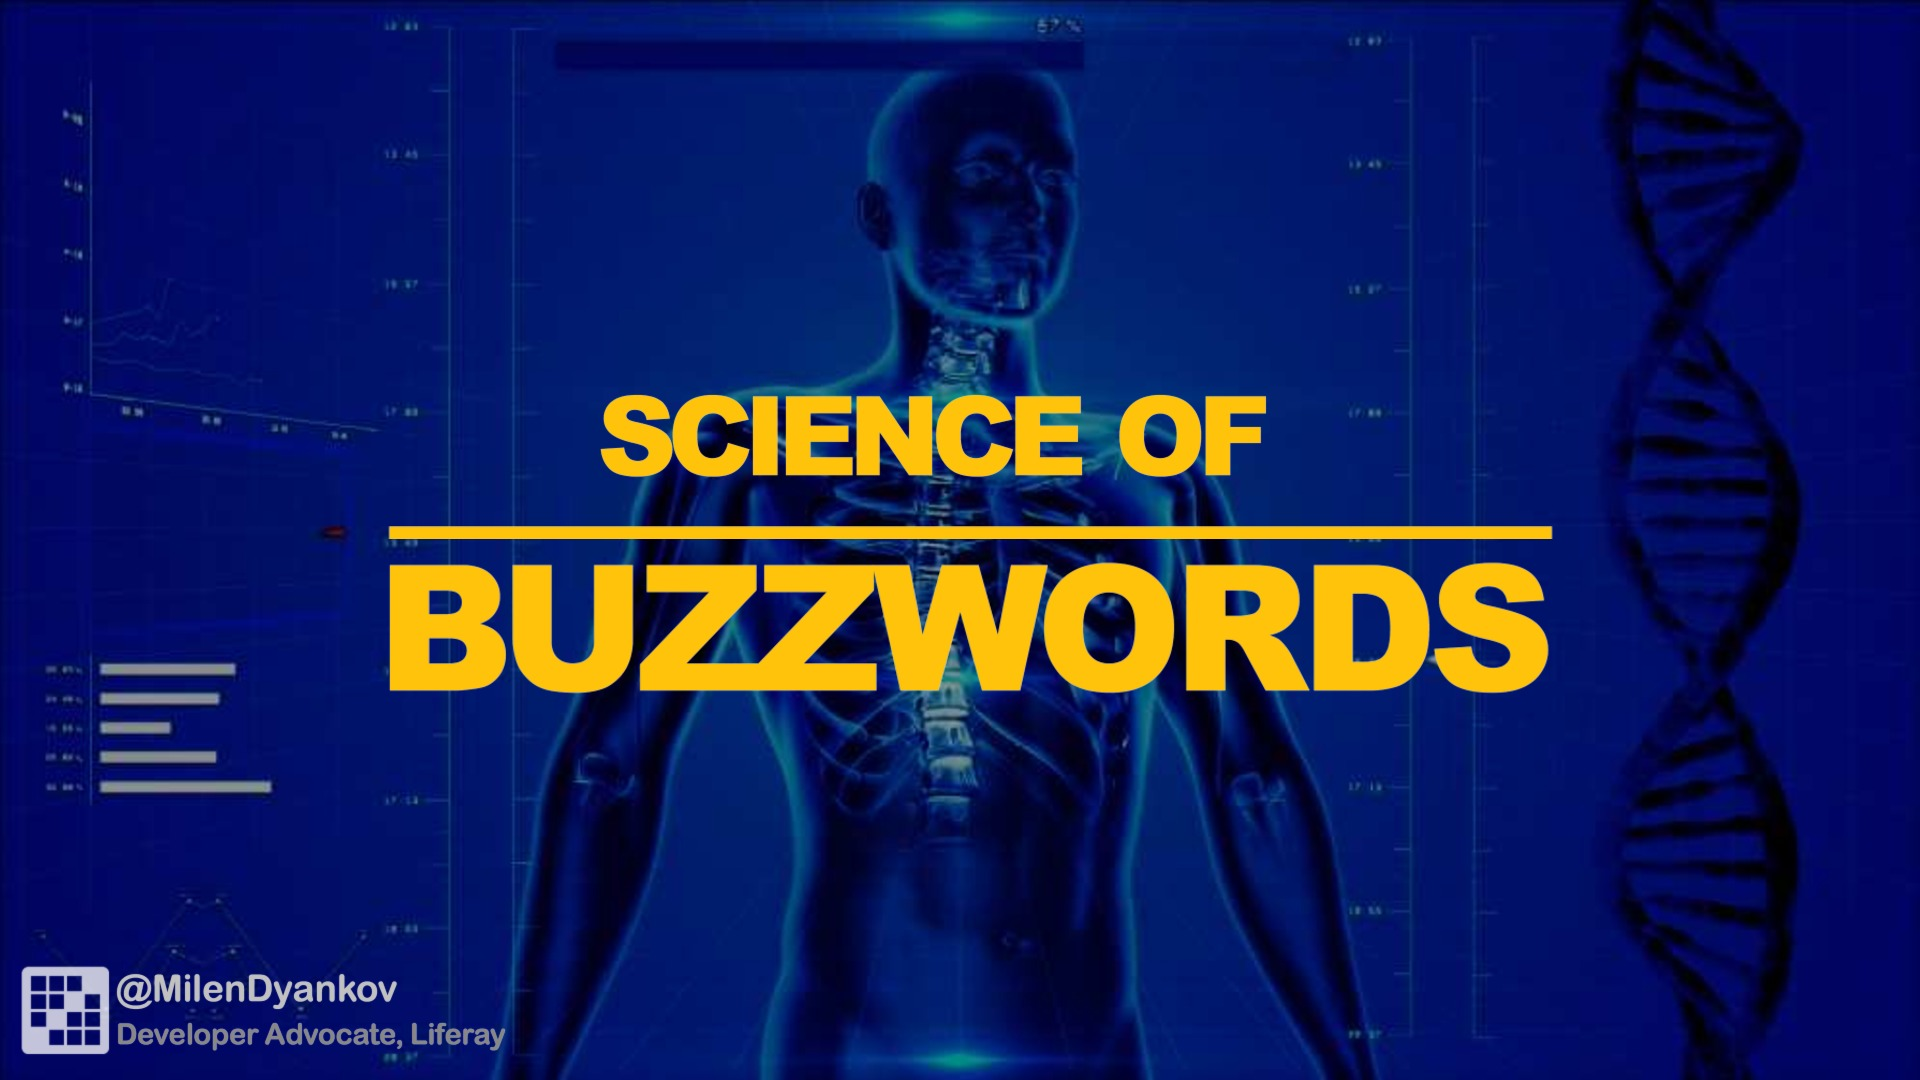 Science of buzzwords